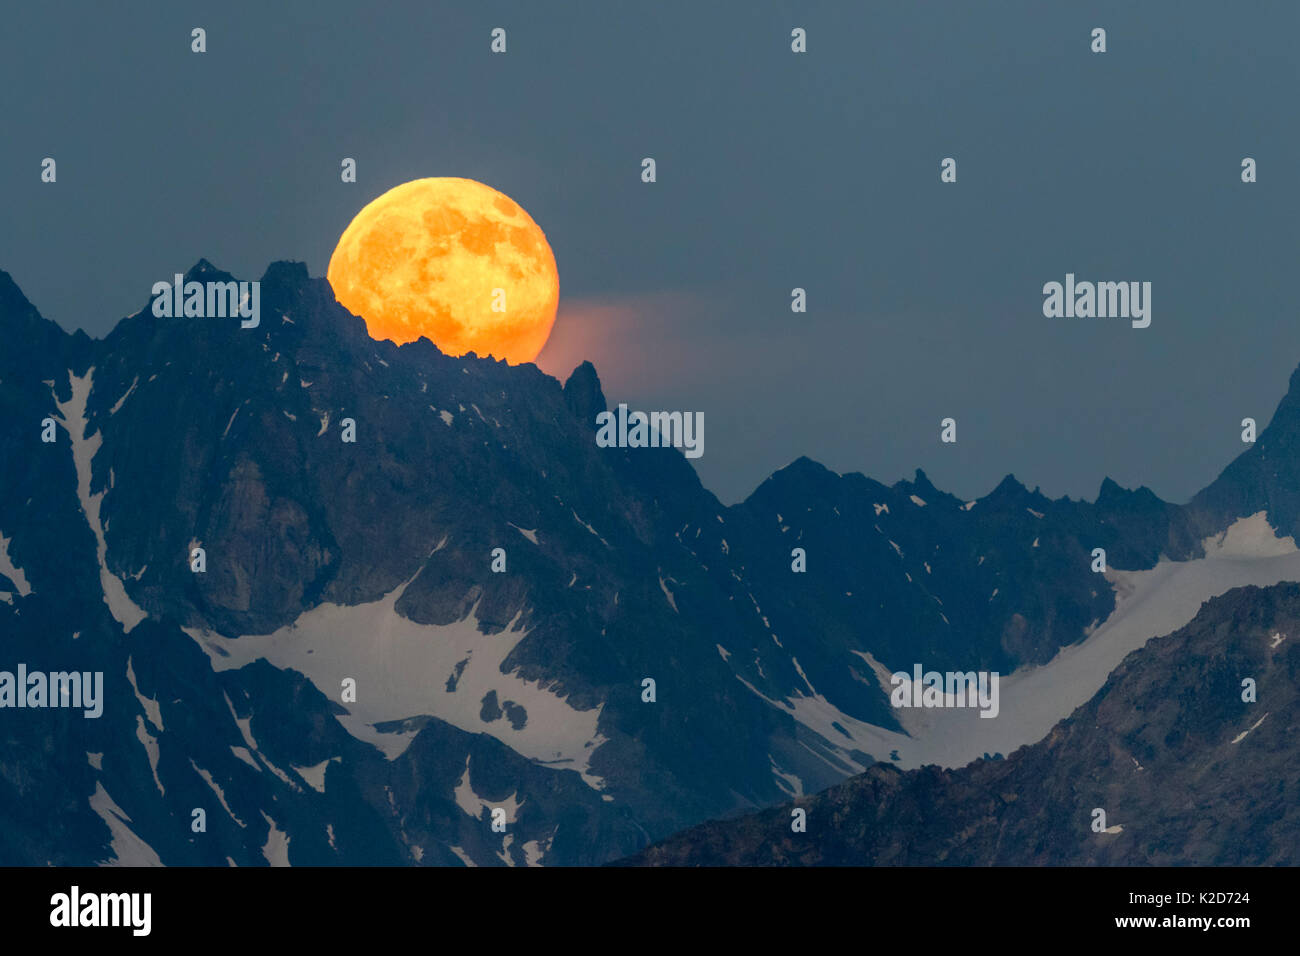 Full moon rising over the Verpeilspitze (3430m). This peak is part of the Glockturmkamm, the westernmost ridge of the Otztal Alps. Nordtirol, Austrian Alps. July. Digitally stitched panorama. - Stock Image